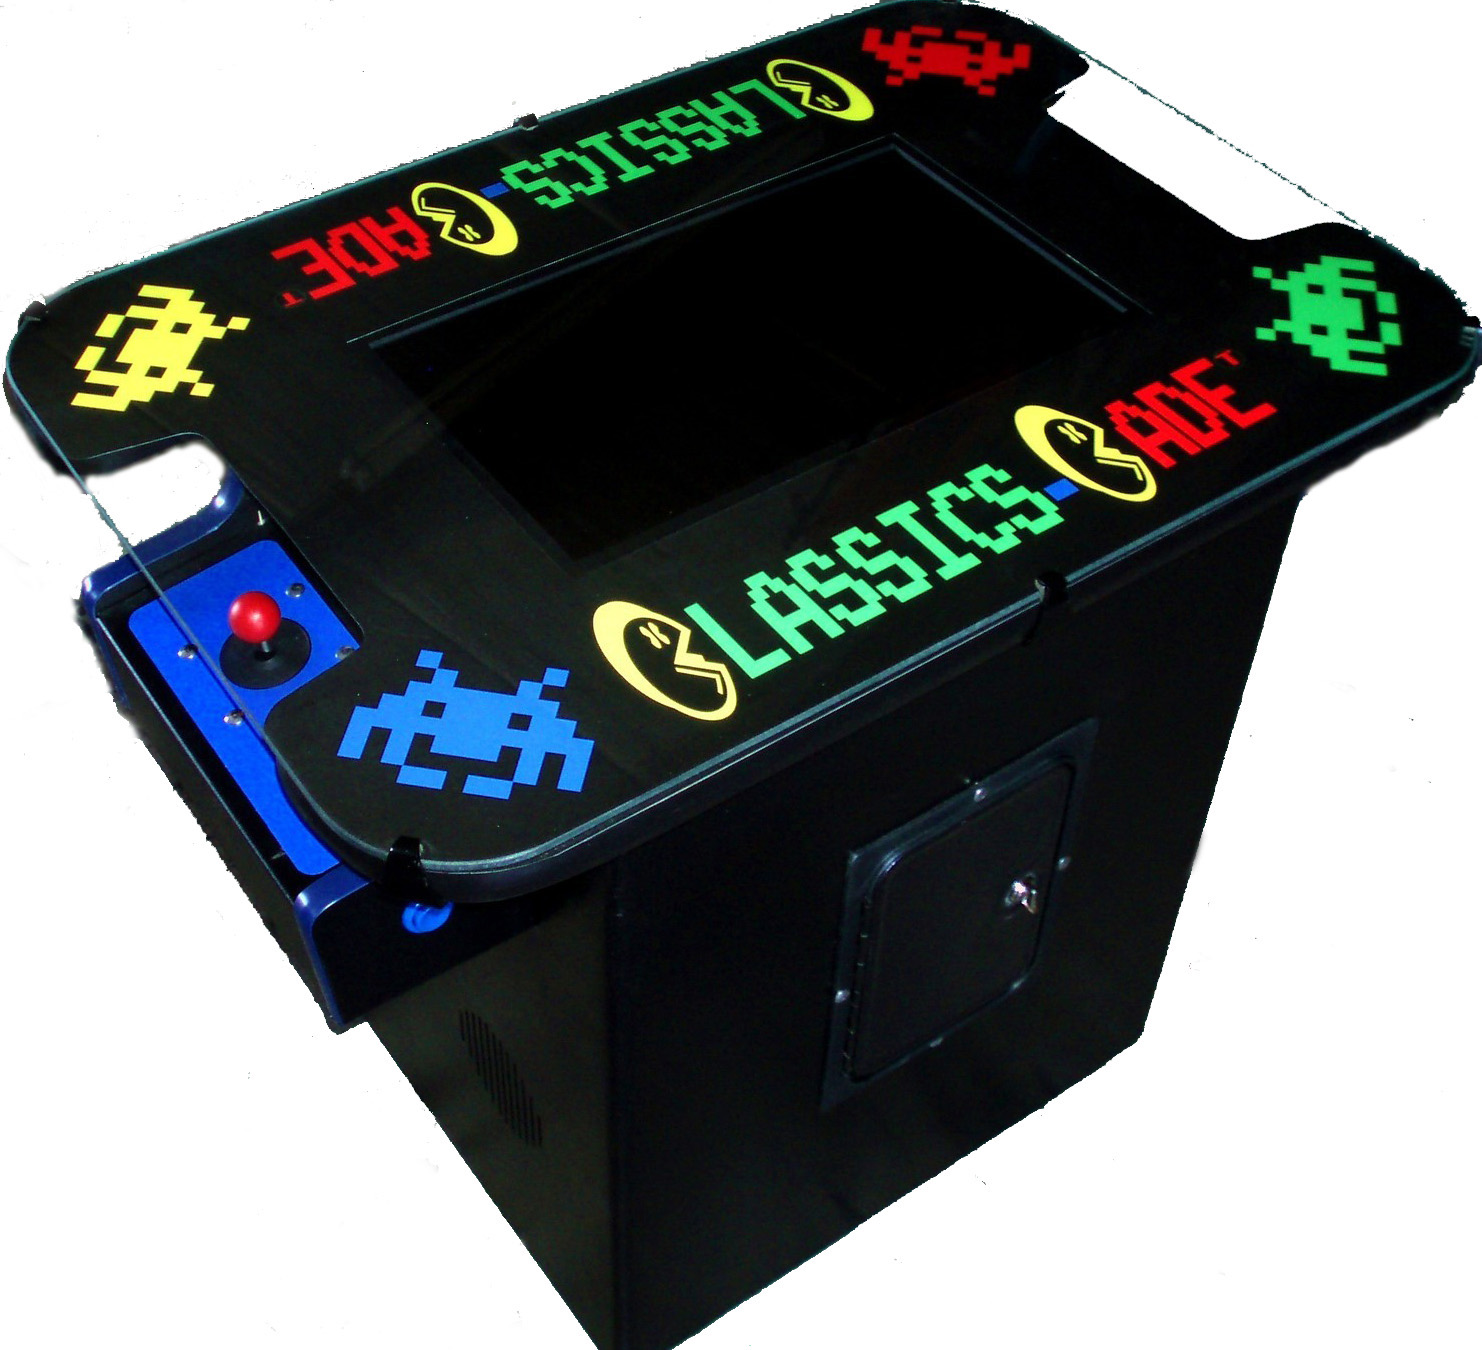 Classic Table Arcade Games Arcade Video Game Cabinet Sizes Weights And Uses Aceamusements Us